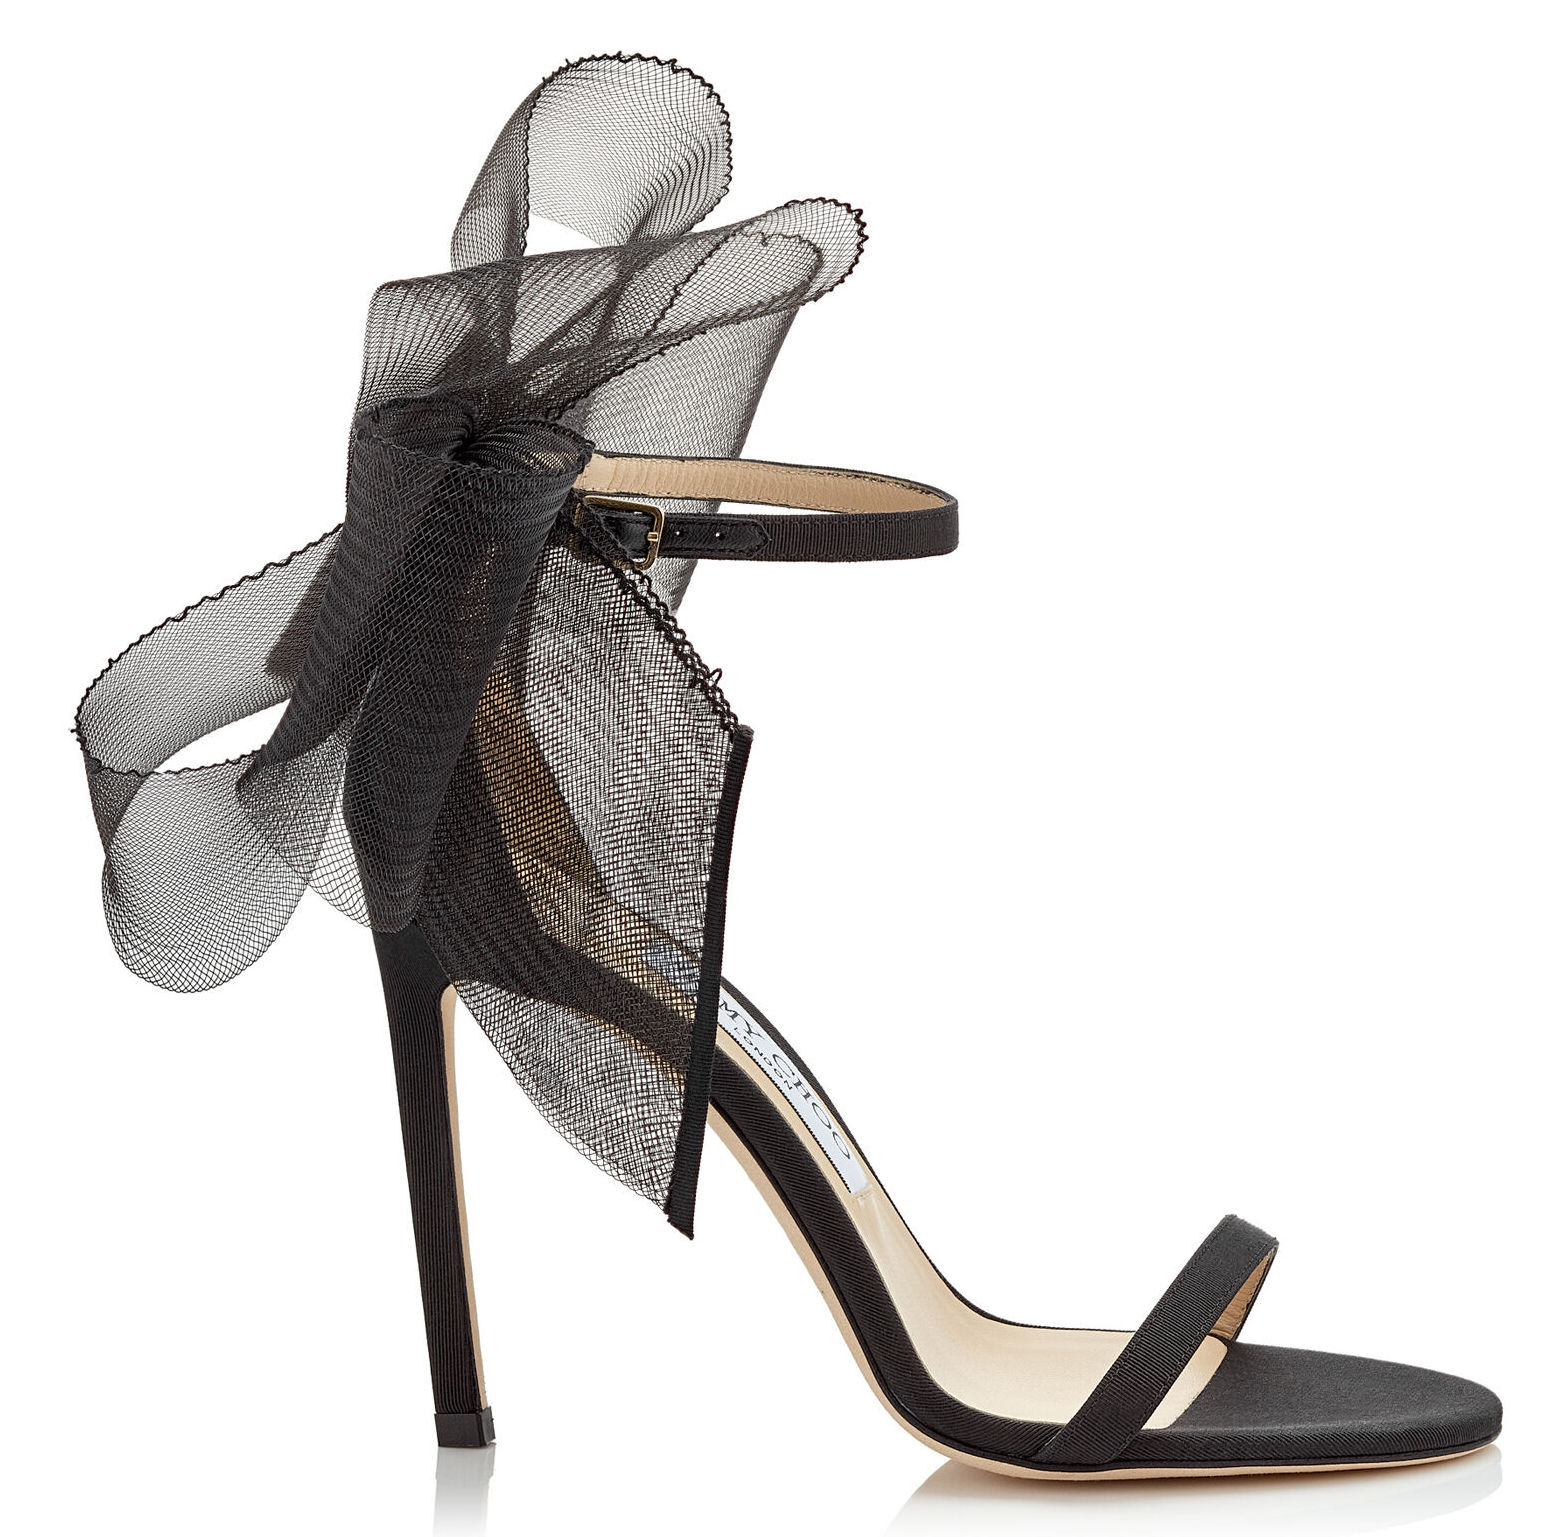 AVELINE 100 Black Sandal with Asymmetric Grosgrain Mesh Fascinator Bows